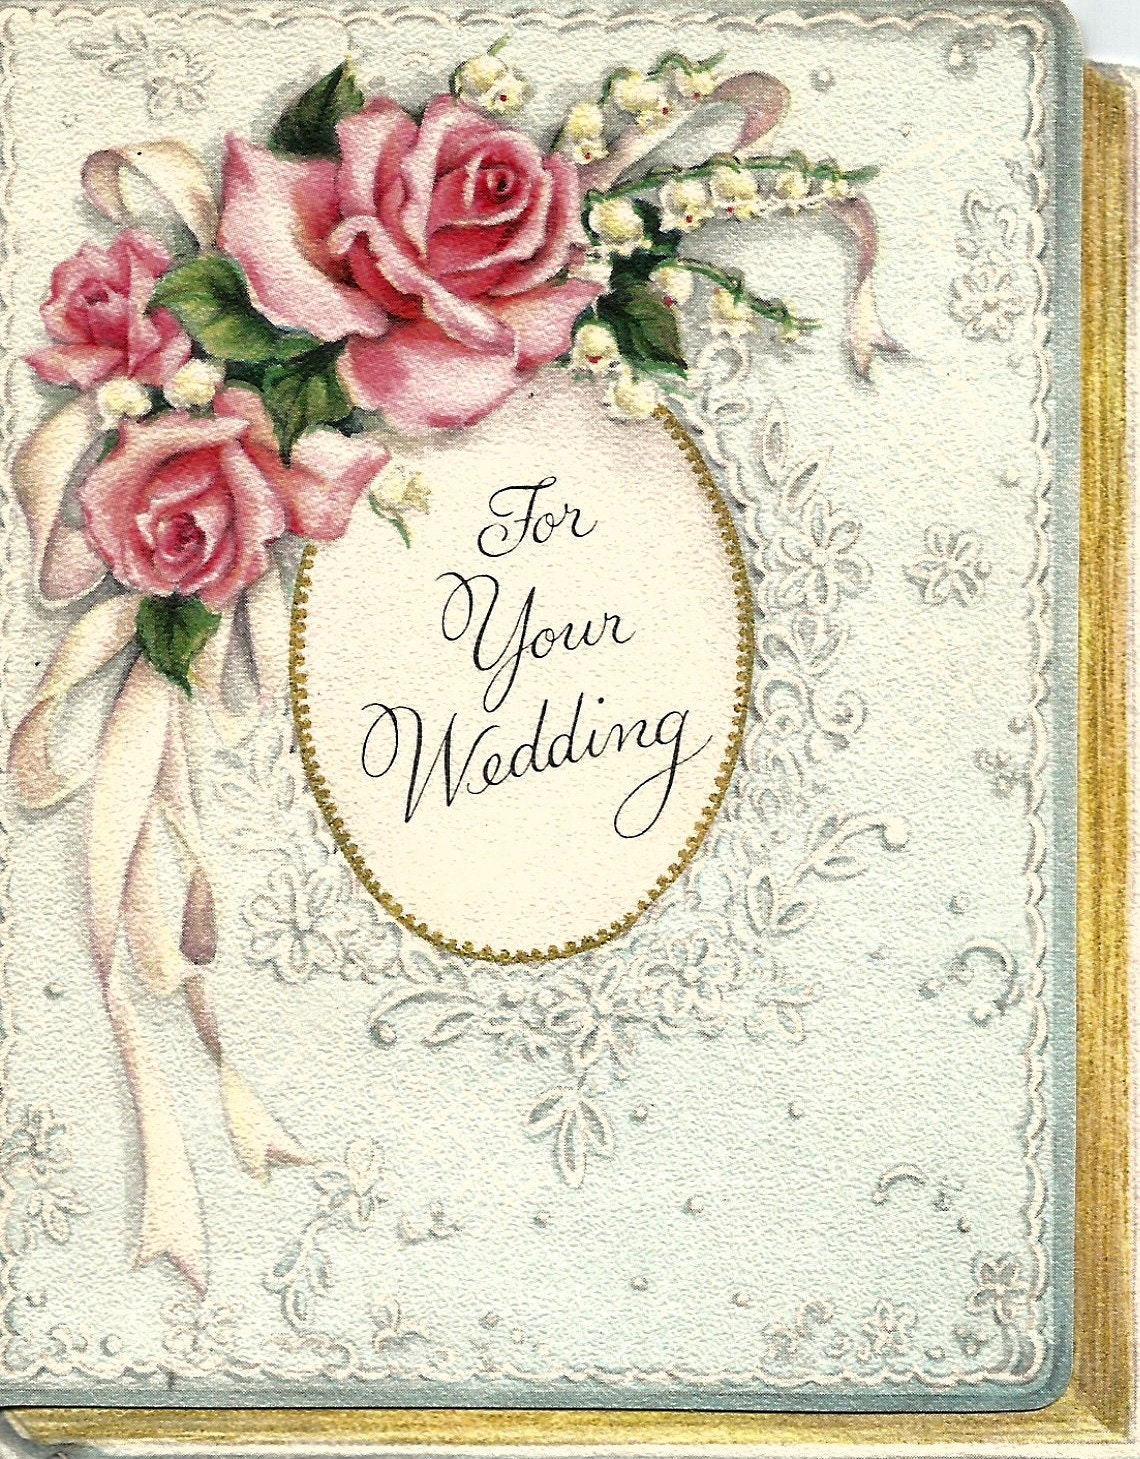 Vintage Wedding Congratulations Greeting Card Floral Flowers Etsy